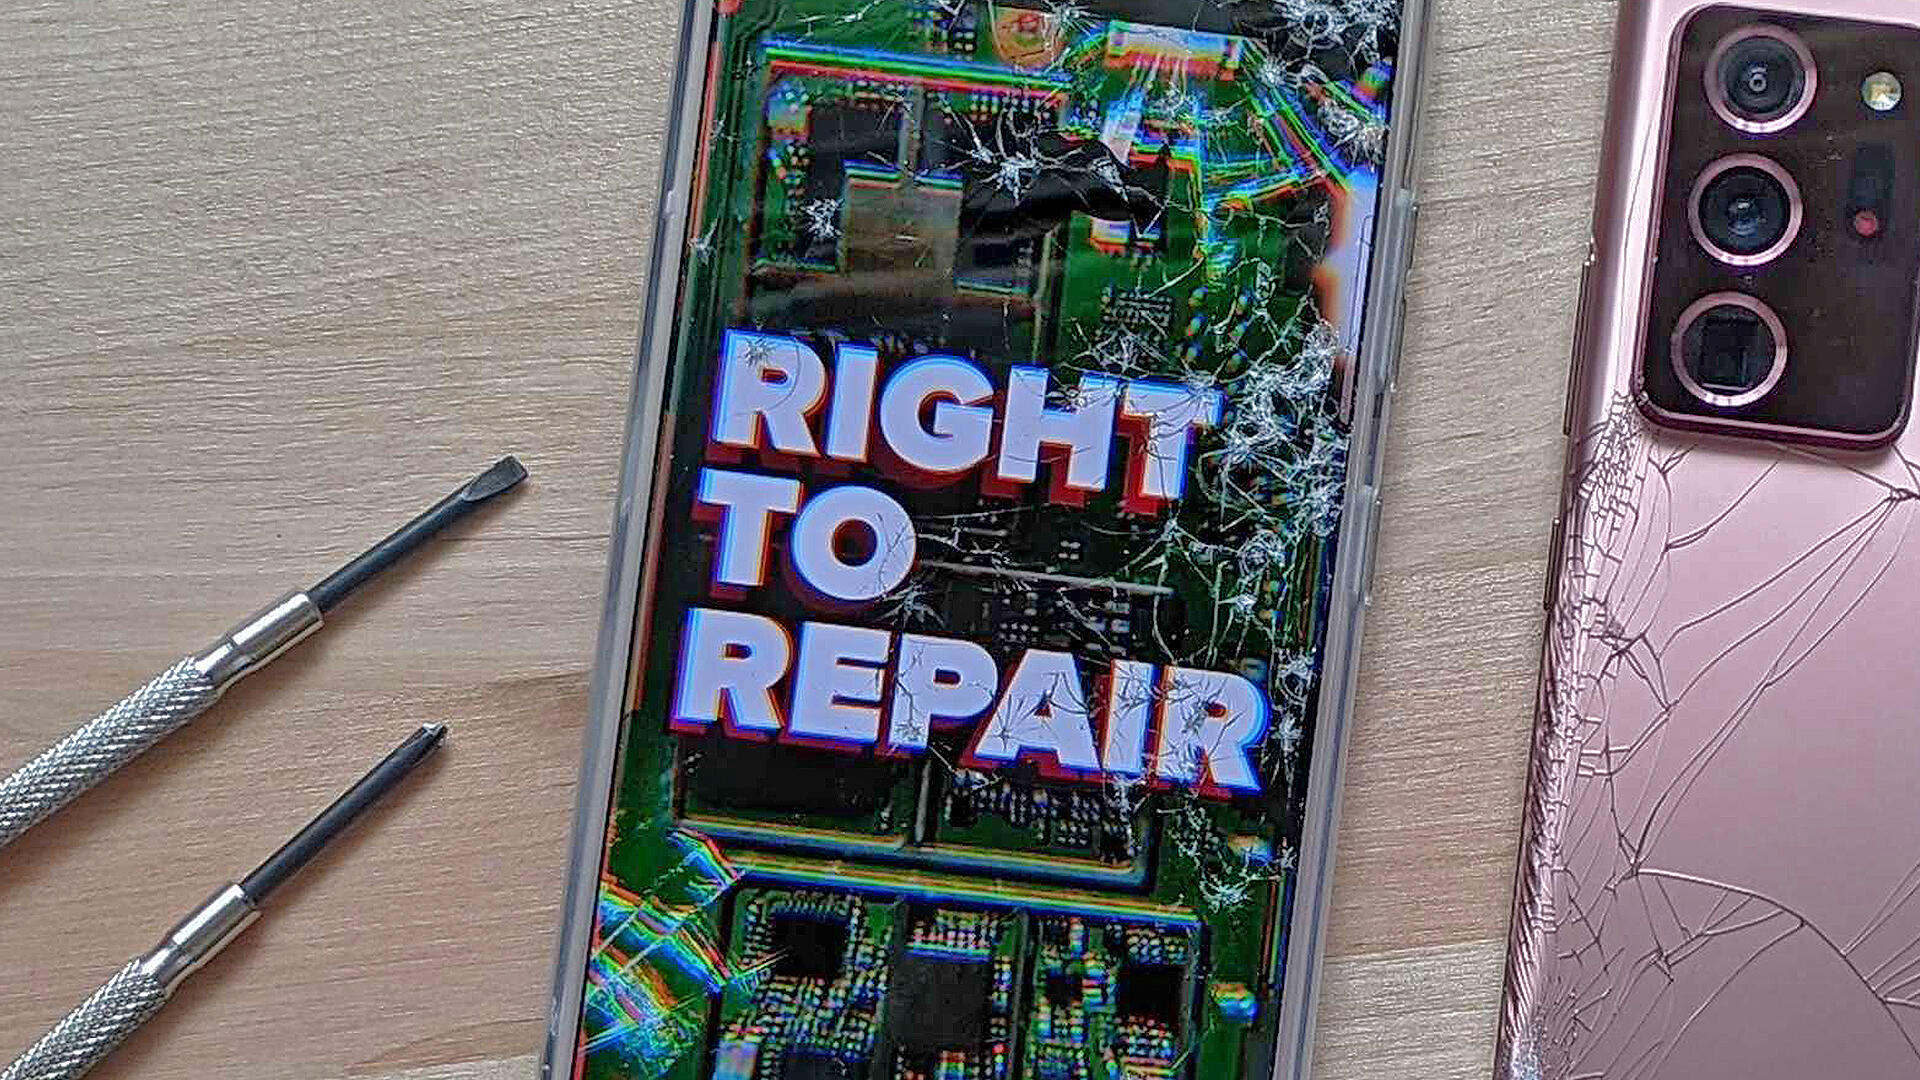 Video: What is the right to repair?